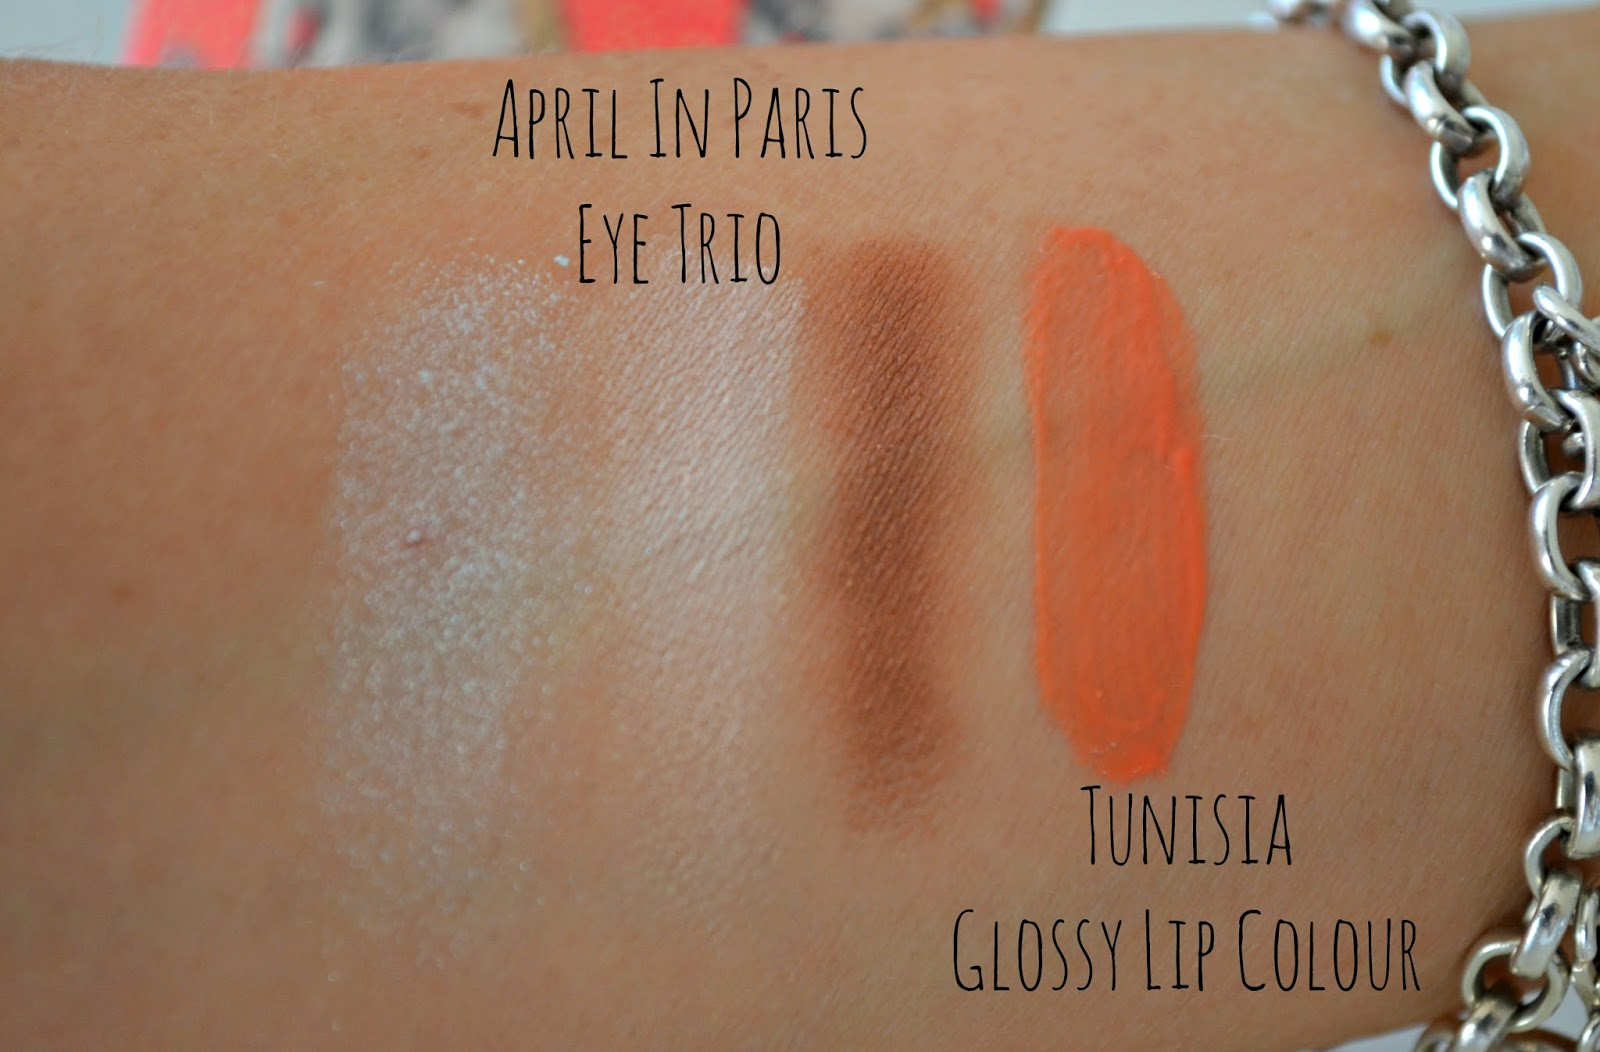 Paul and Joe eyes colour trio and glossy lip golour